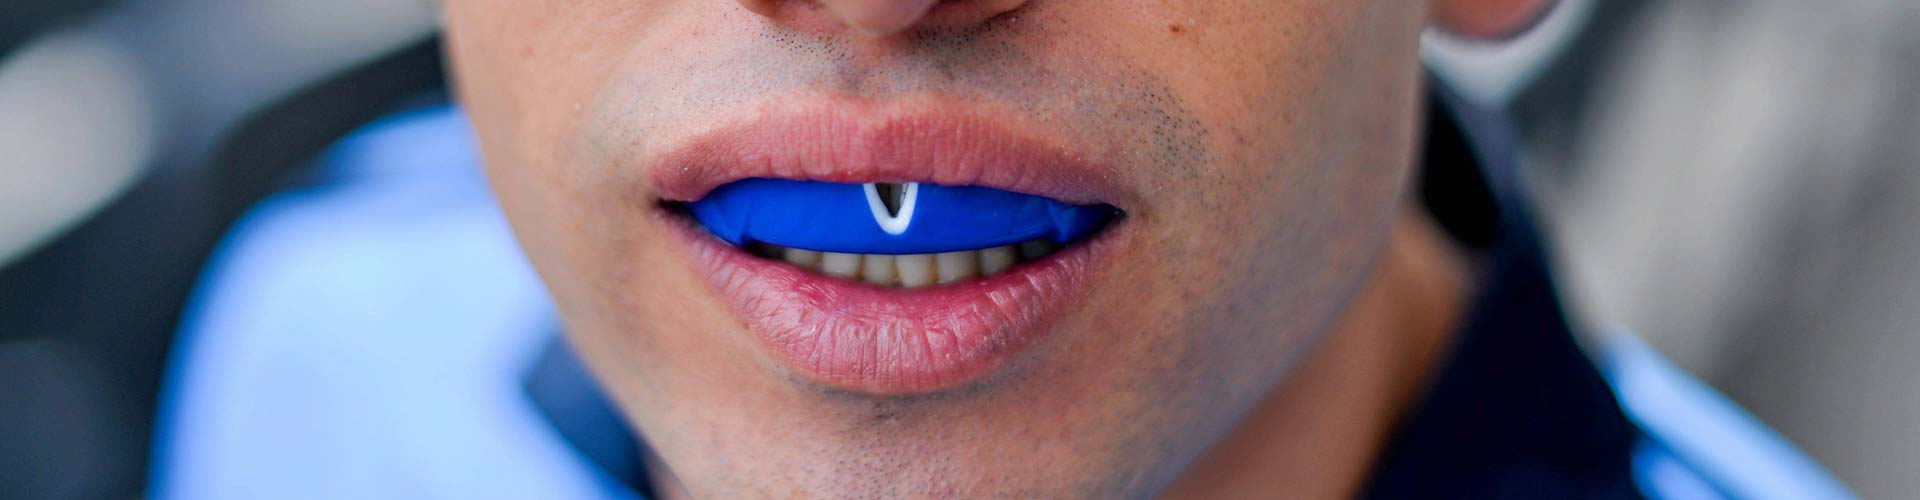 jfd_mouthguards.jpg